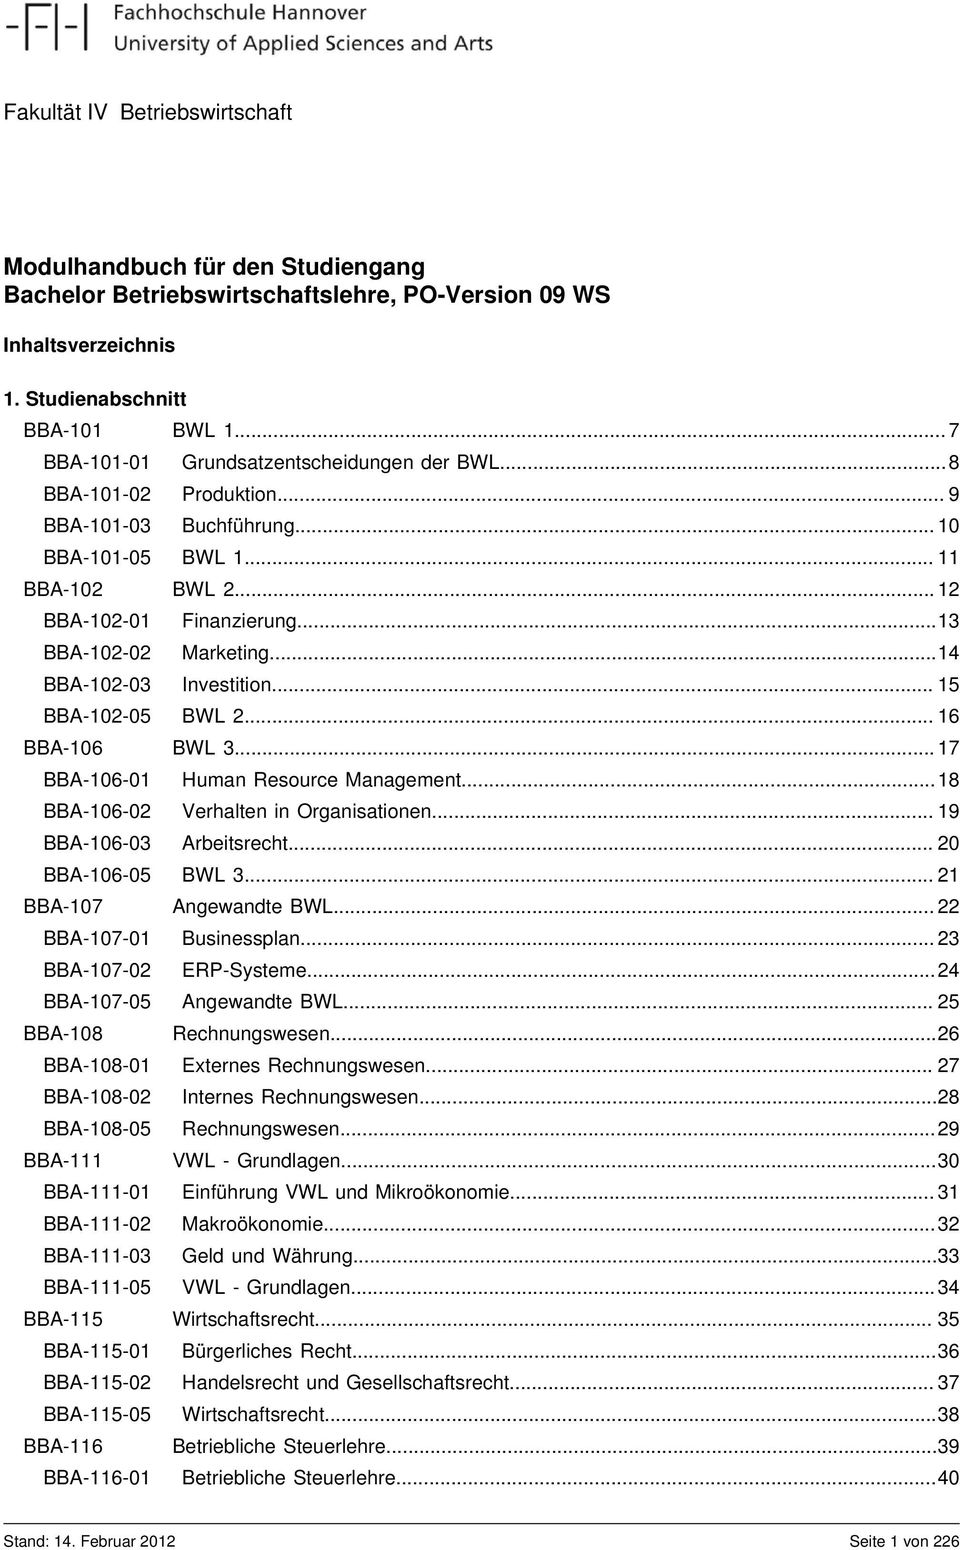 ..14 BBA-102-03 Investition... 15 BBA-102-05 BWL 2... 16 BBA-106 BWL 3... 17 BBA-106-01 Human Resource Management...18 BBA-106-02 Verhalten in Organisationen... 19 BBA-106-03 Arbeitsrecht.